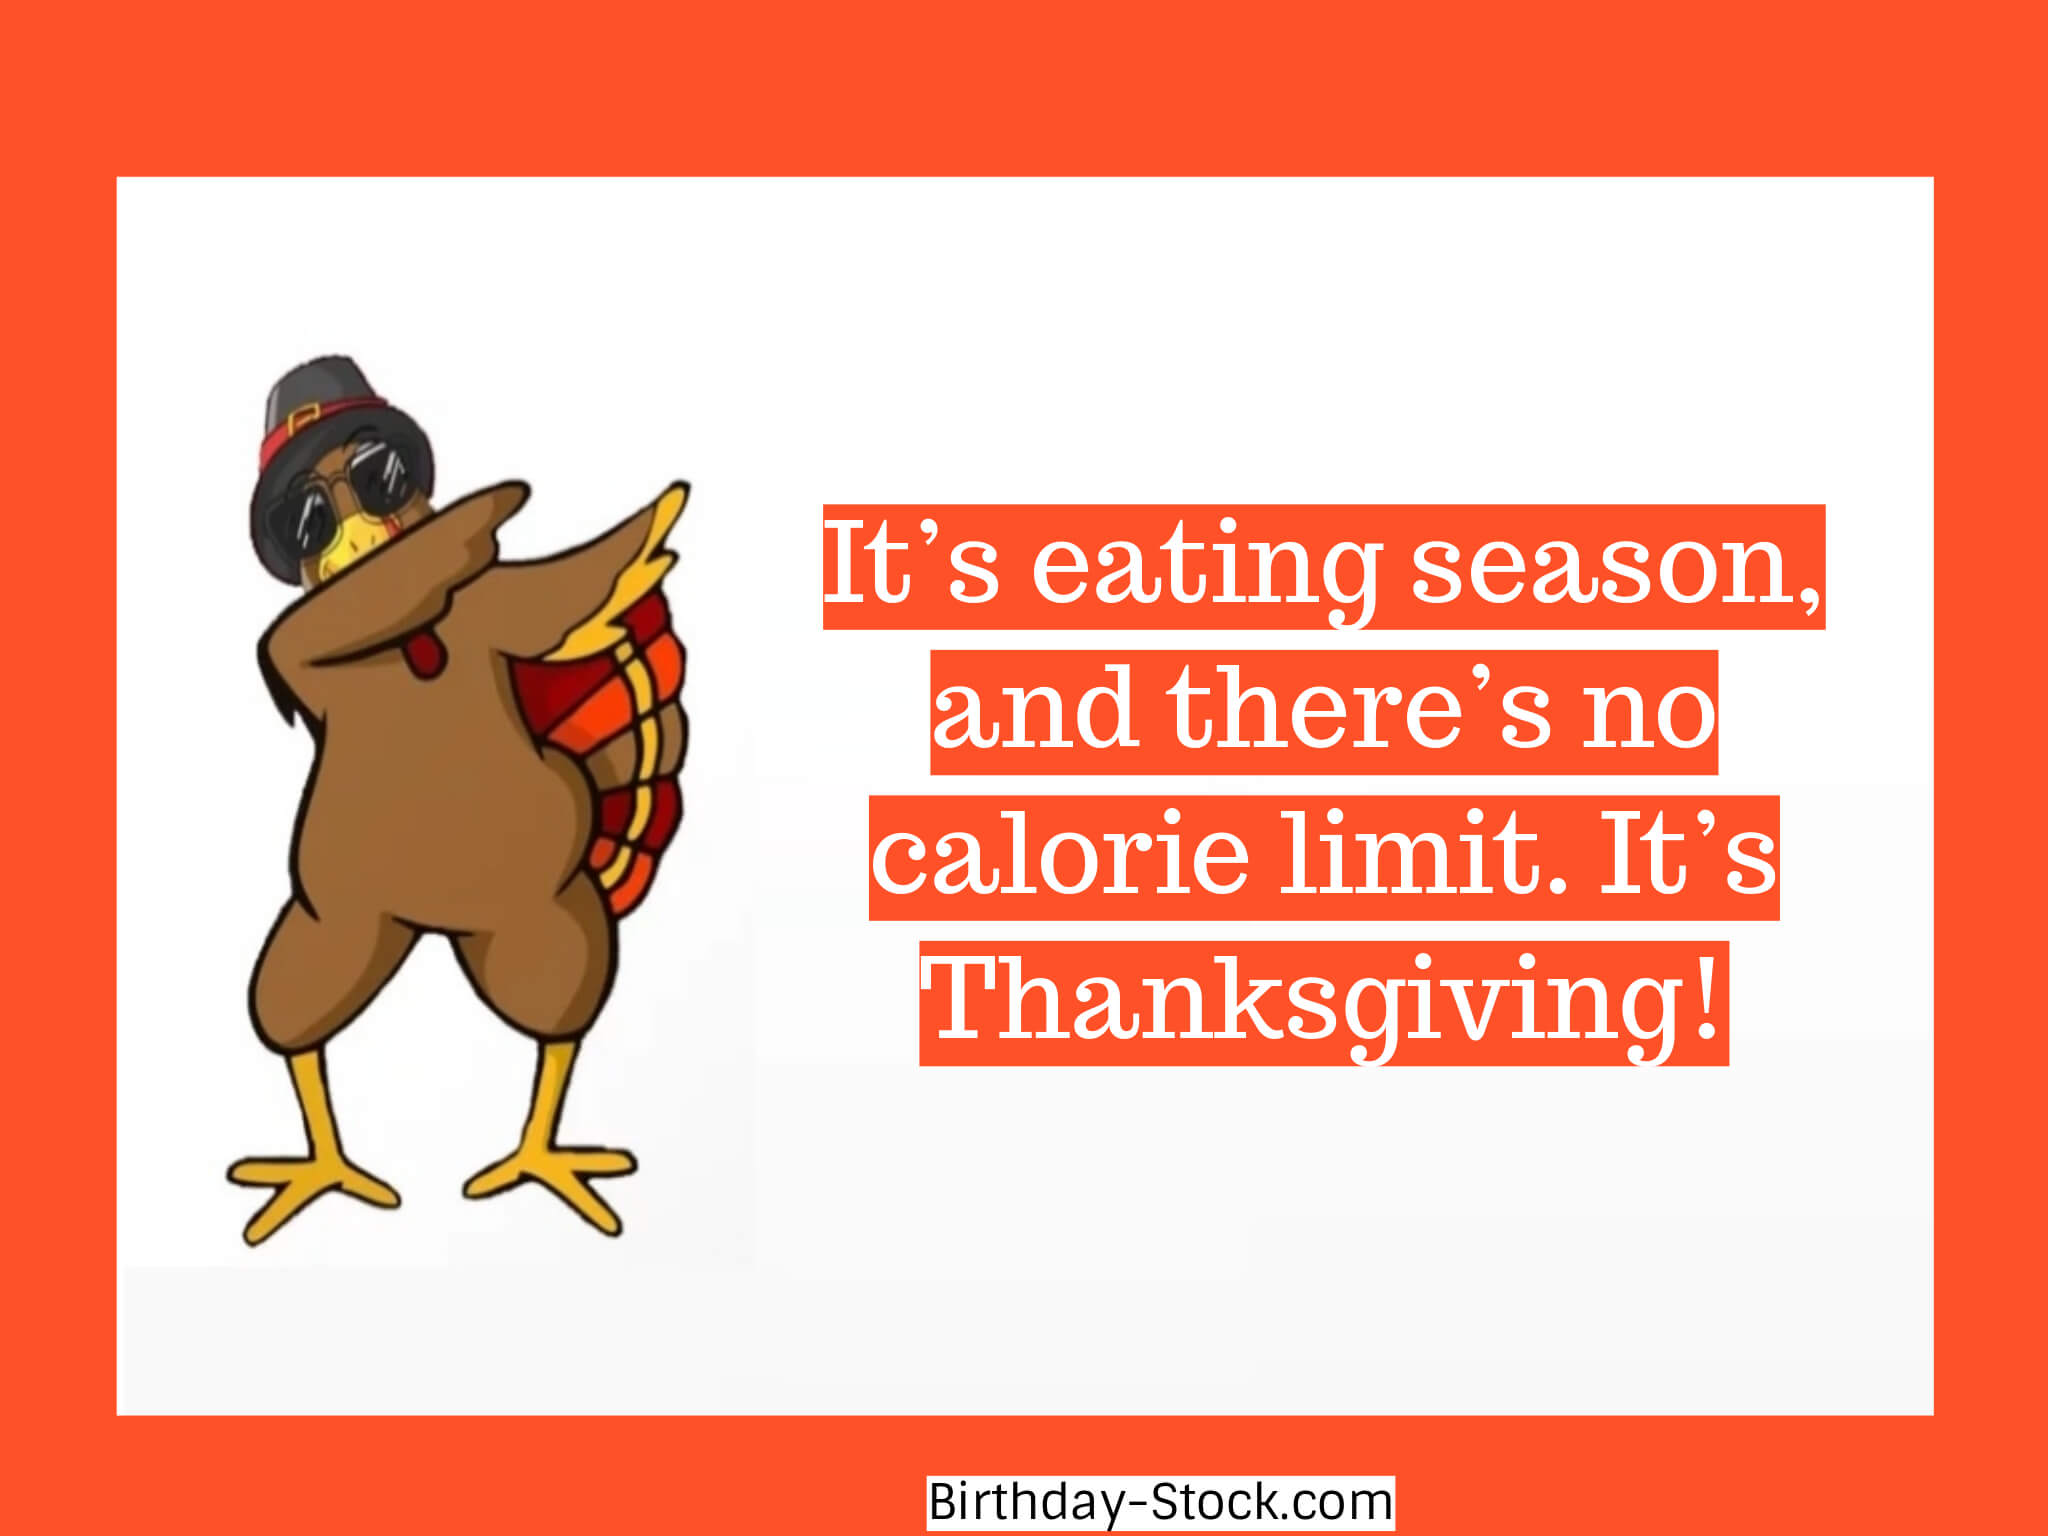 Funny Images Of Turkey Day 2019